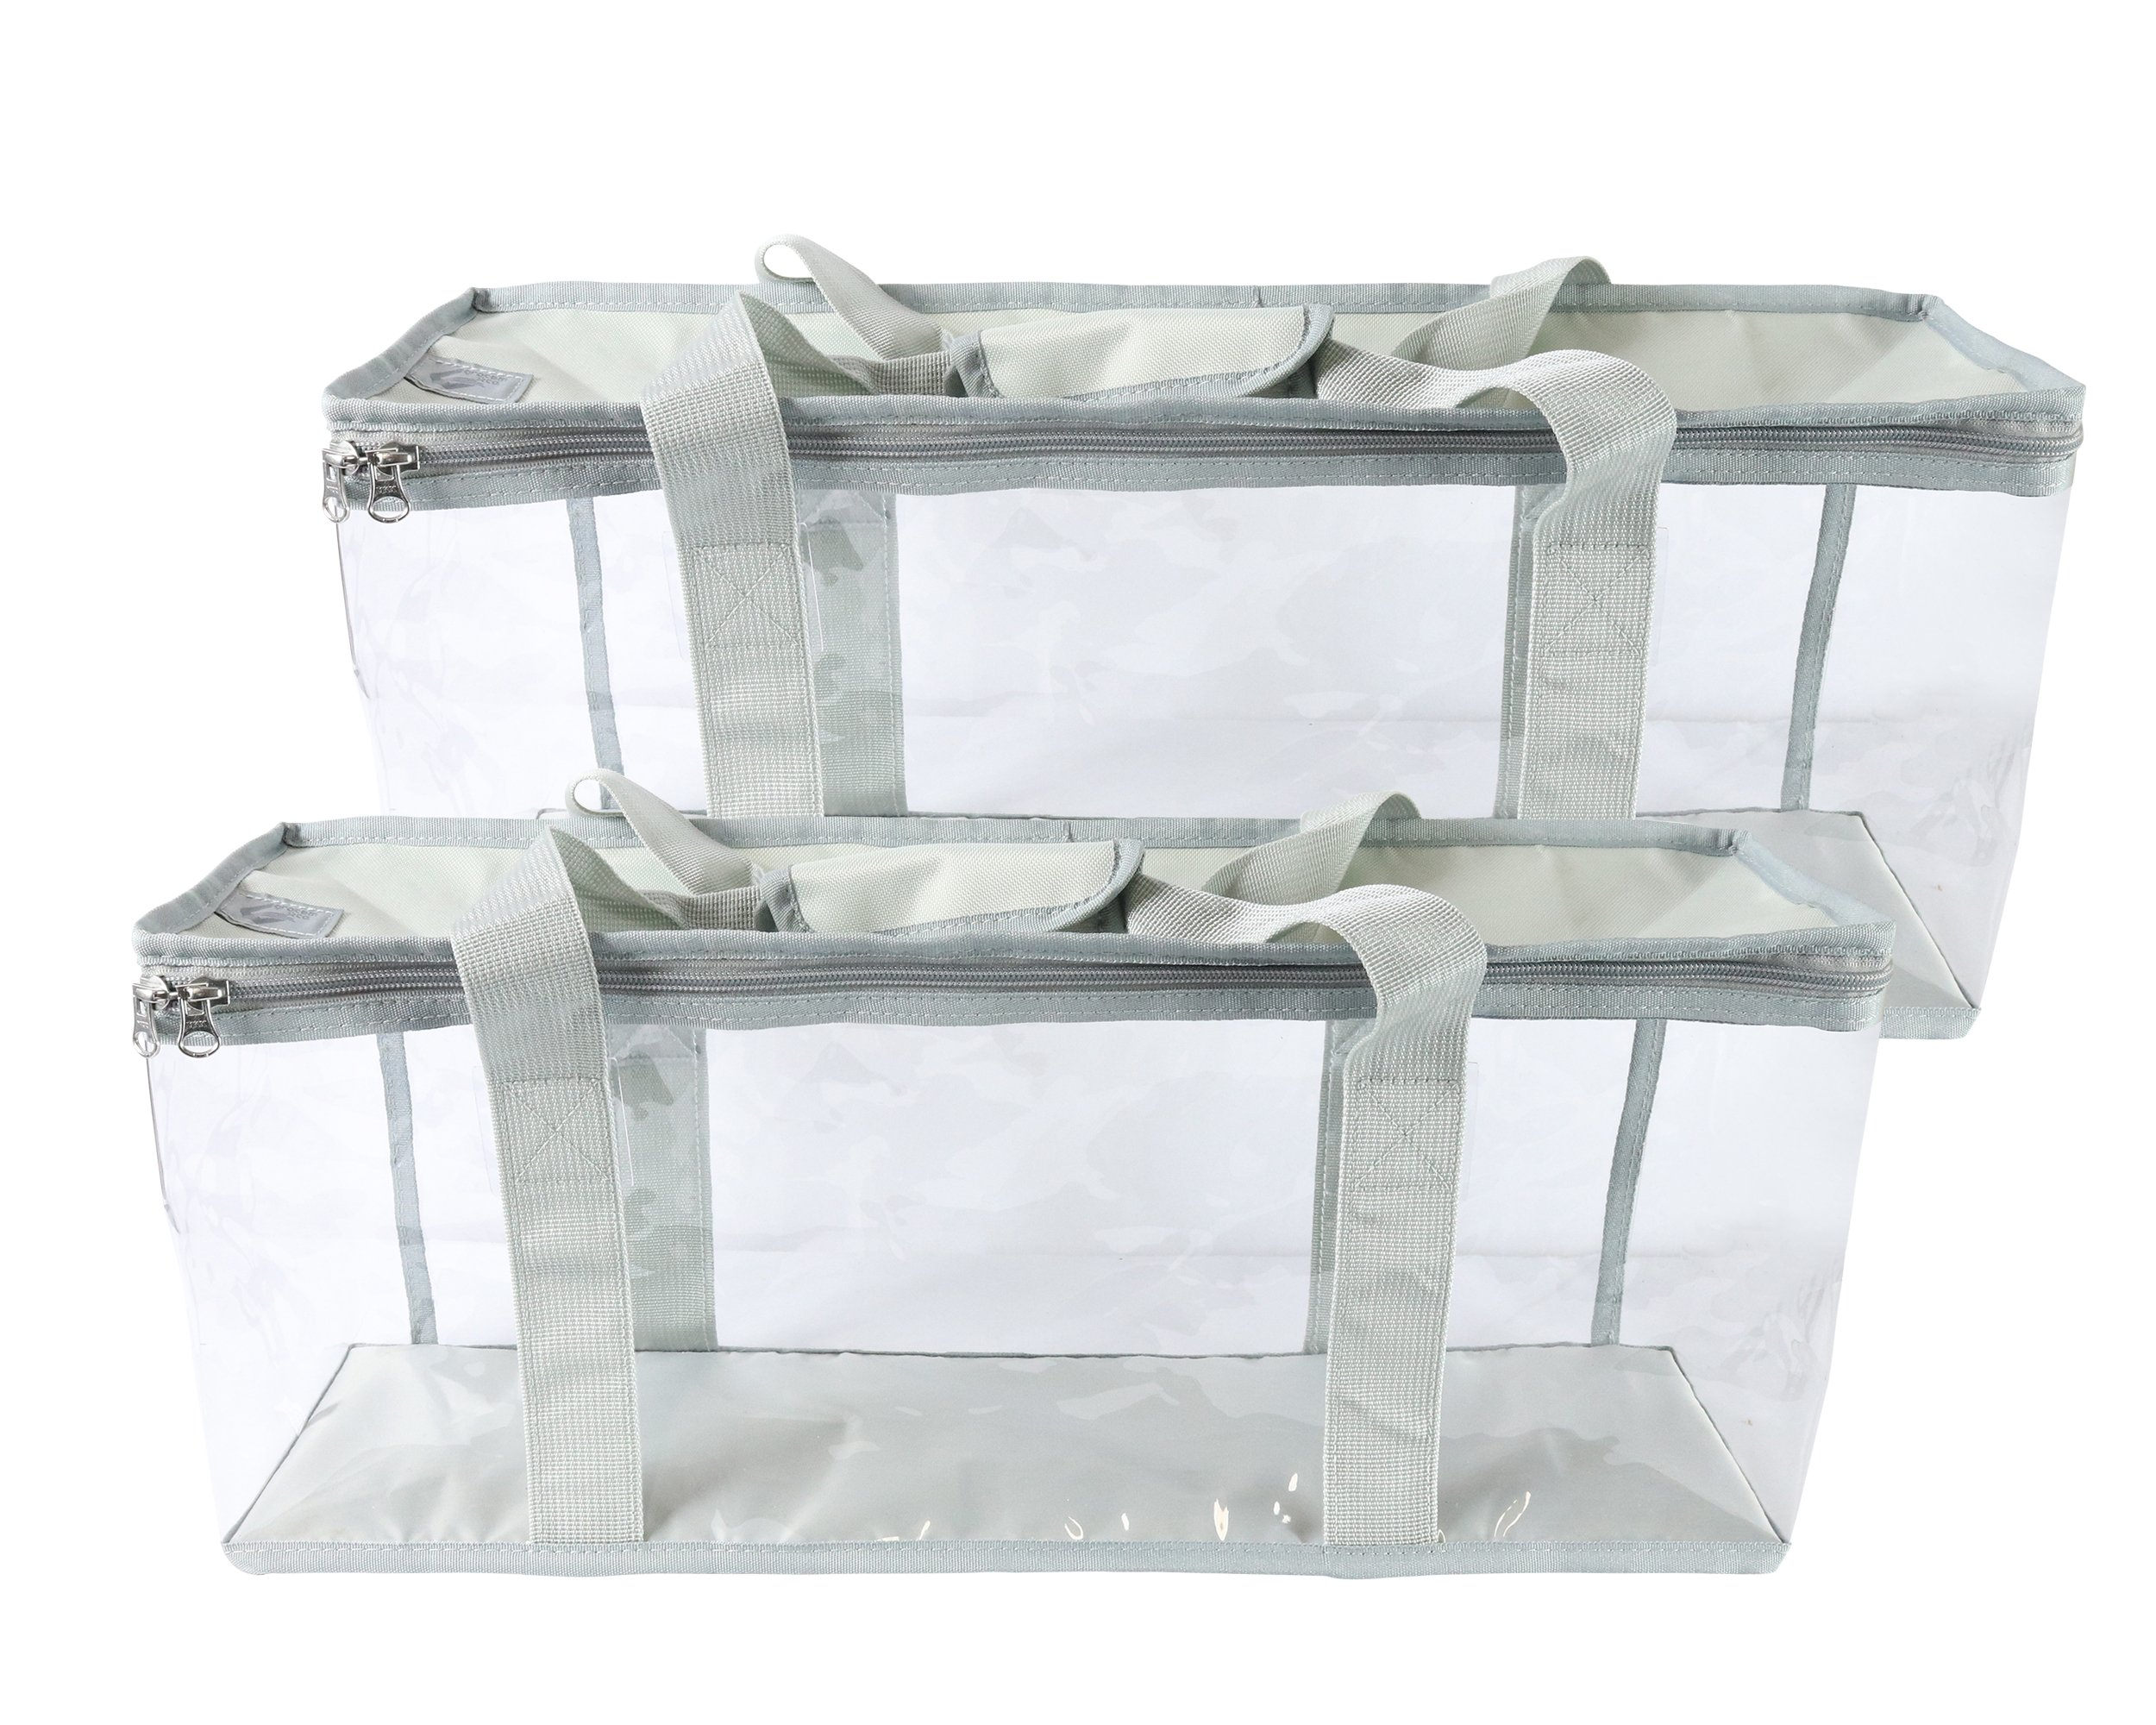 Clear View DVD Blu-Ray Storage Bags – Best Large Capacity Portable Media Organizer Cases For Carrying Film Discs, Home Movies, Video Games – Transparent Lightweight Plastic Zip Totes by Gracem & Co.